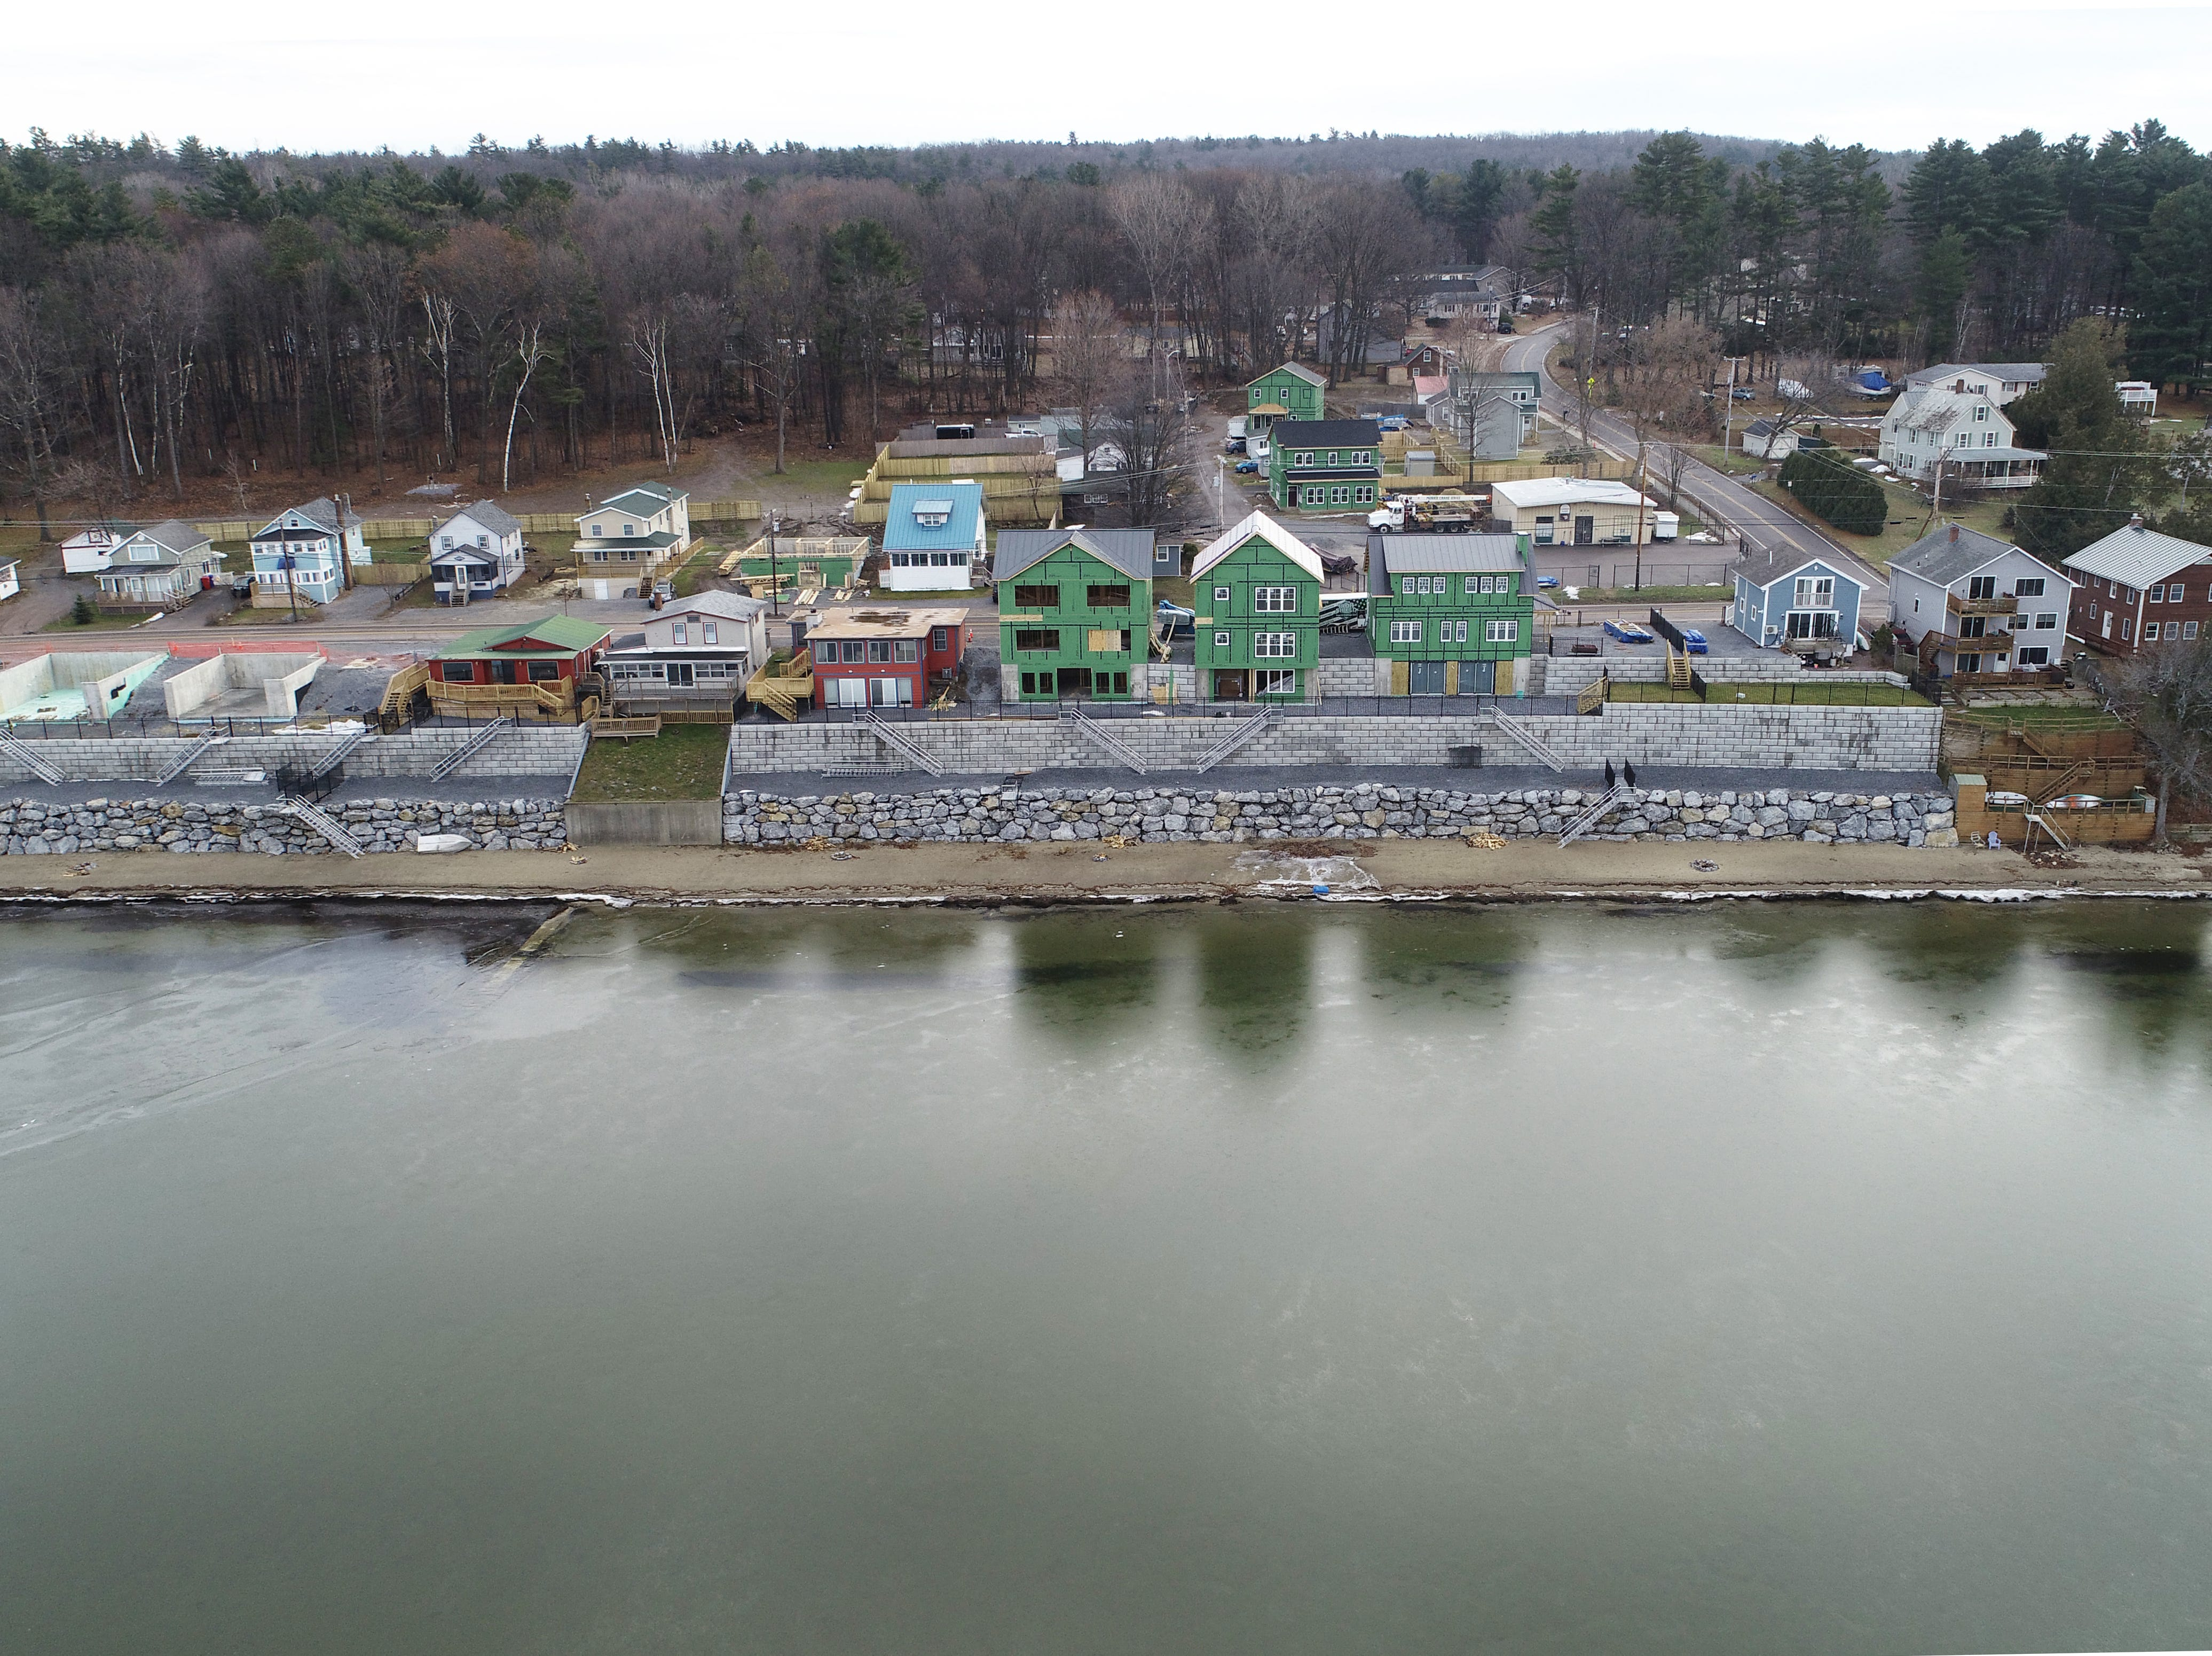 Homes are constructed along East Lakeshore Drive in Colchester, as viewed from a drone above Malletts Bay on Dec. 16, 2019.